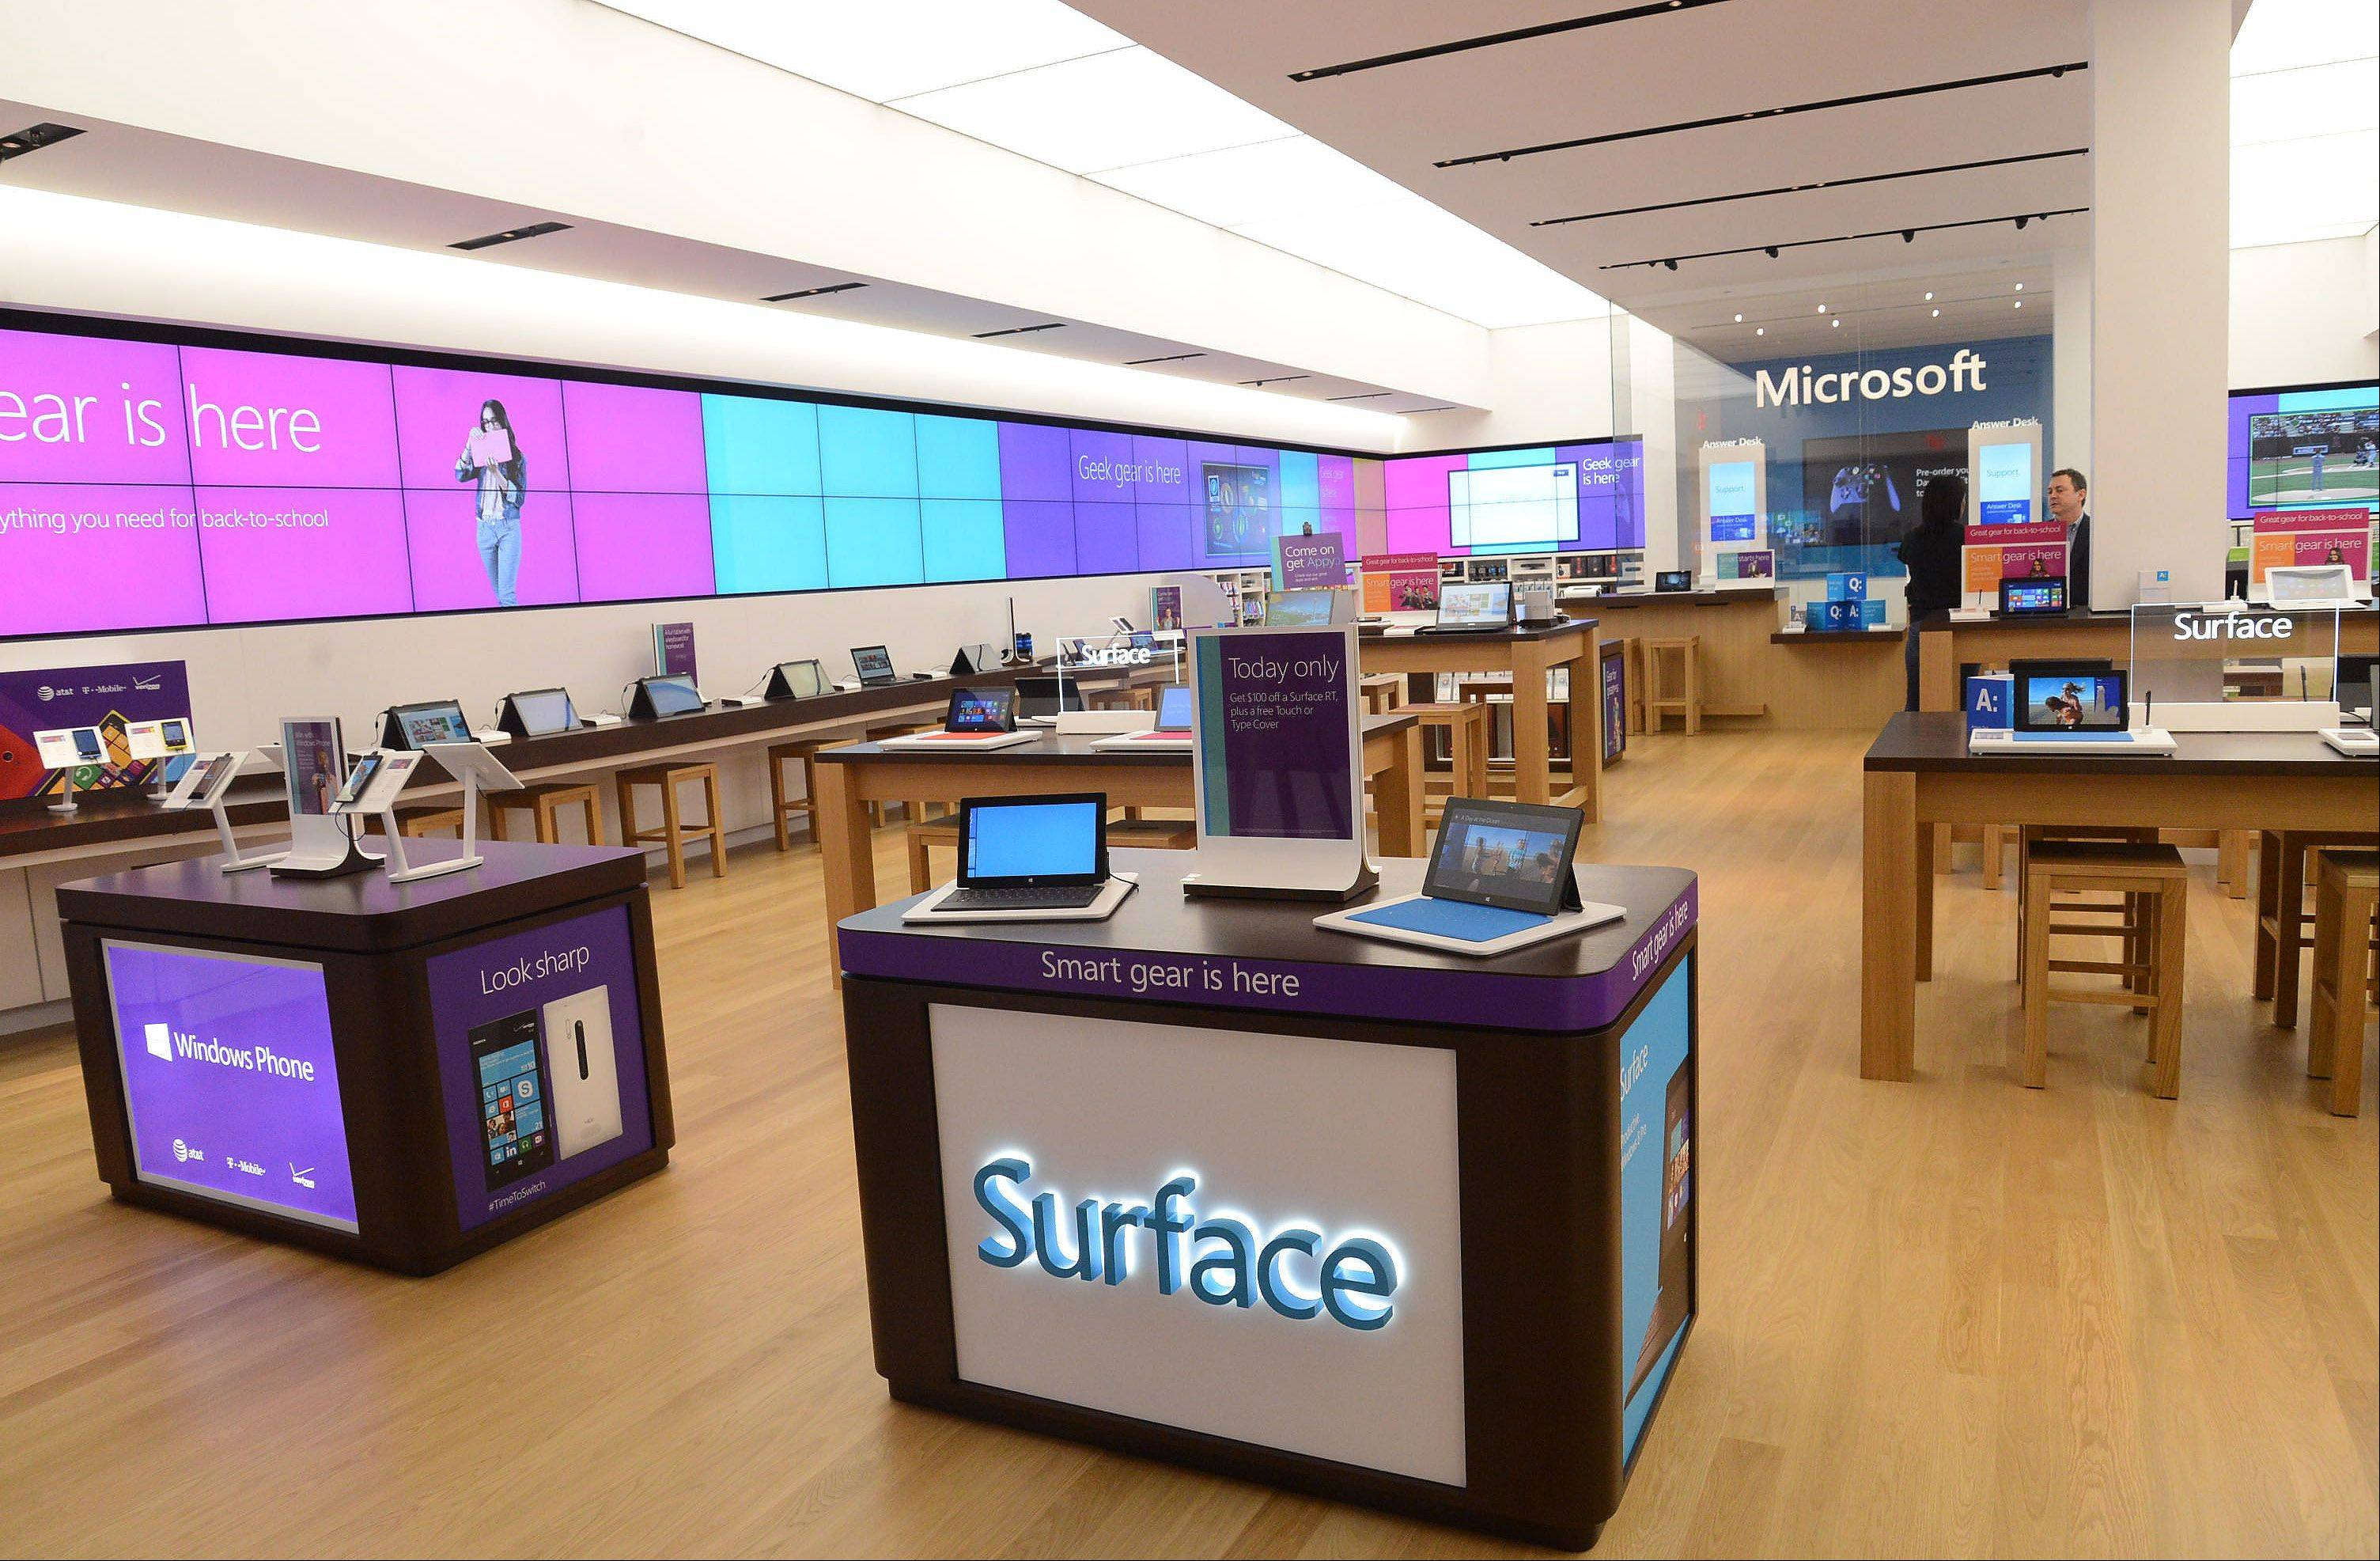 The new Microsoft store, wrapped inside with an LED screen ribbon, will open Saturday at 10:30 a.m.